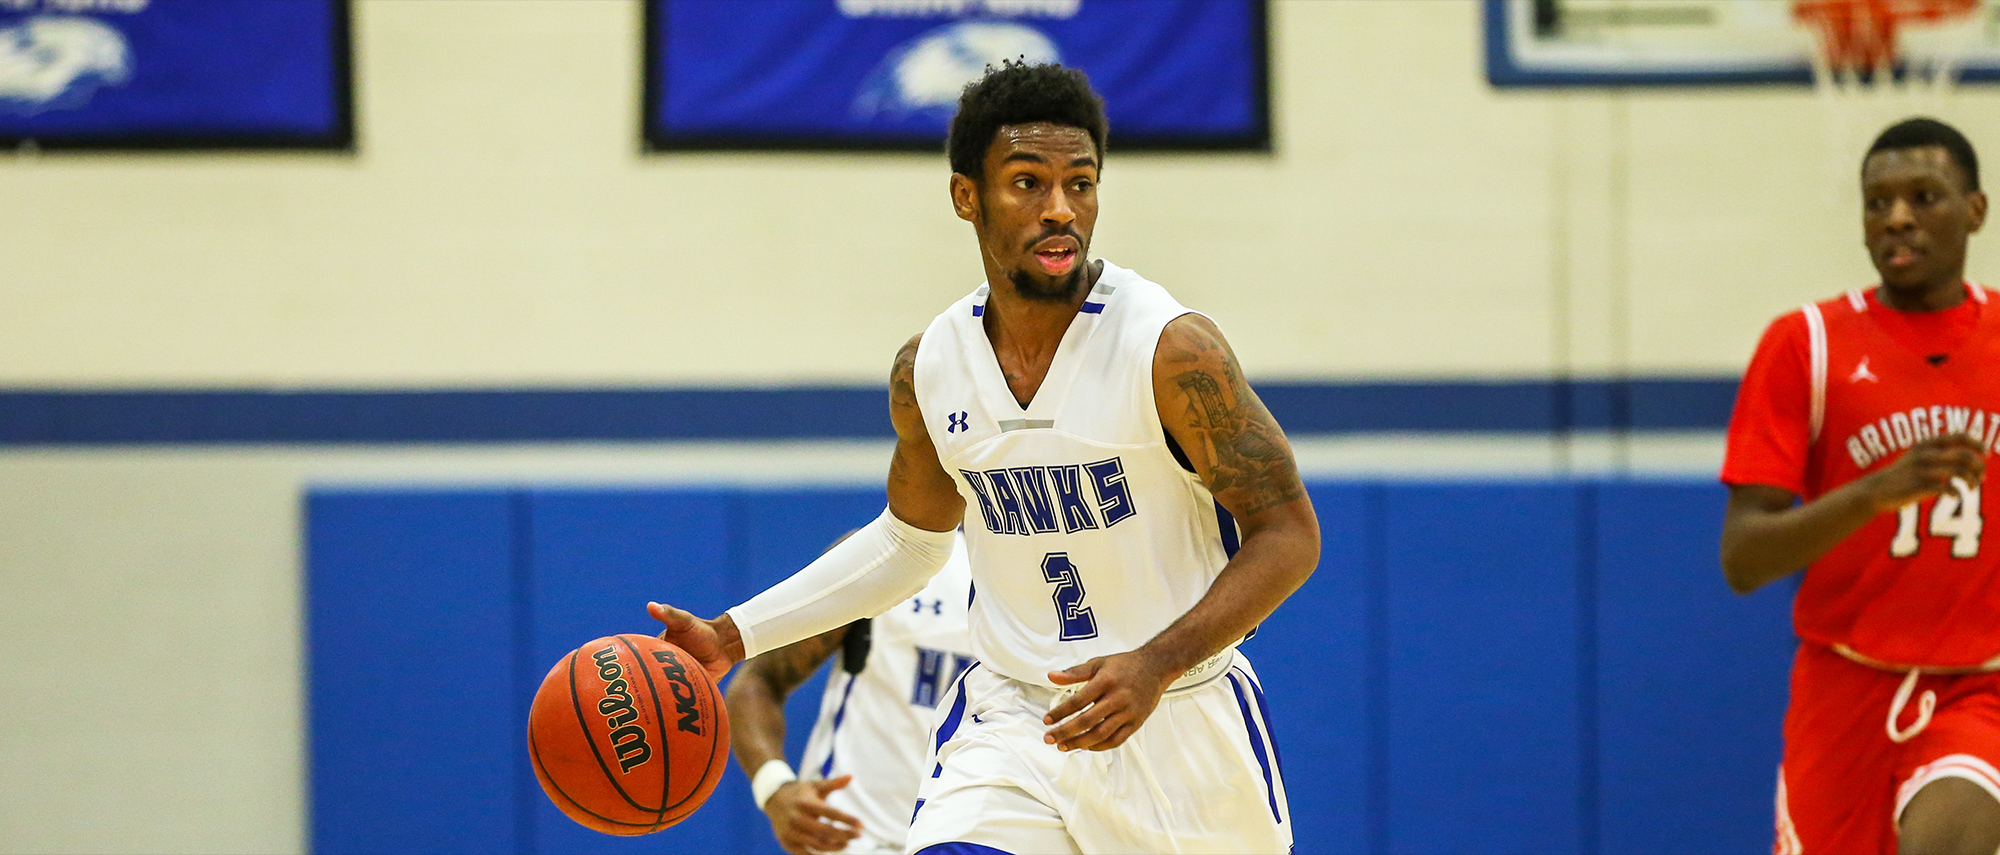 Kareem Davis - Men's Basketball